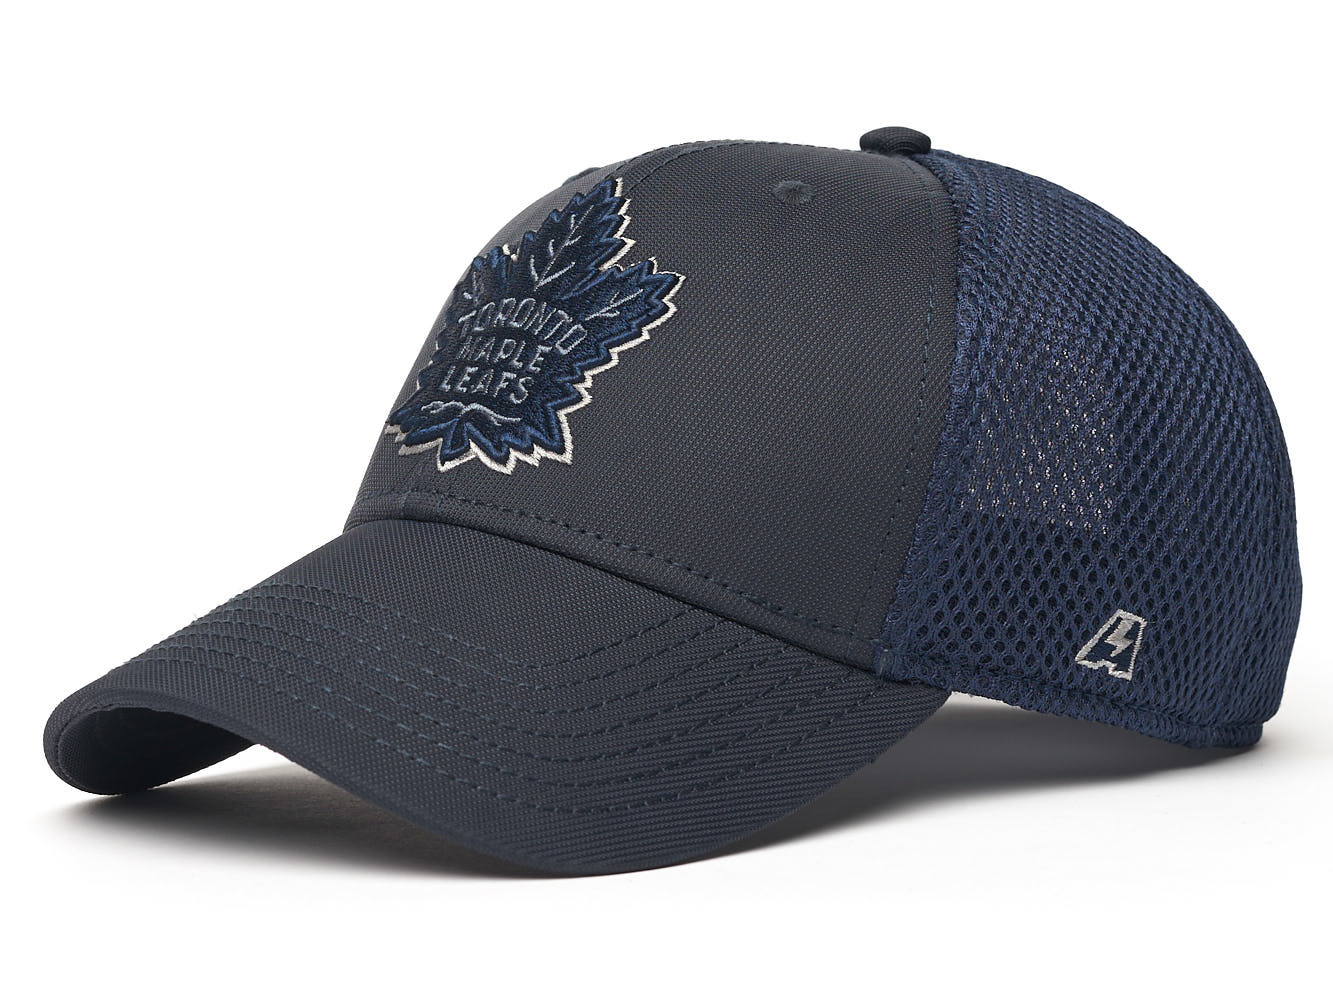 Бейсболка NHL Toronto Maple Leafs (размер M/L)